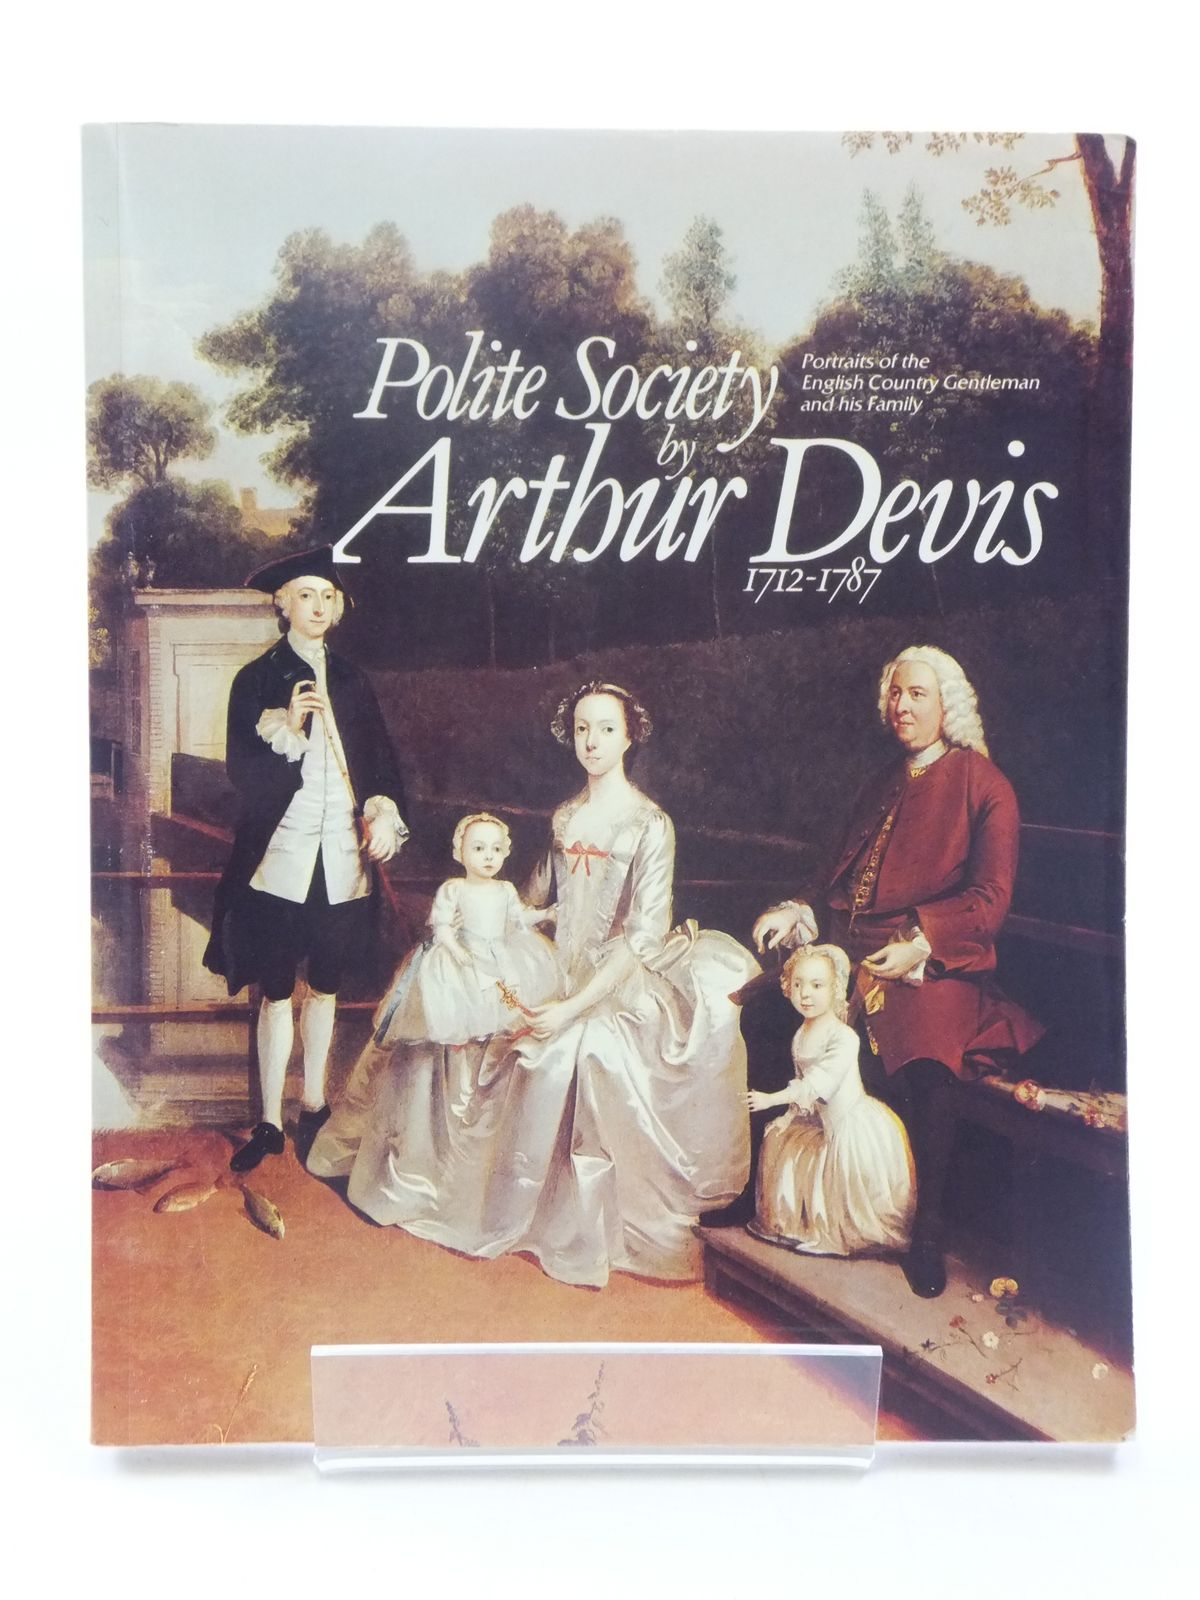 Photo of POLITE SOCIETY BY ARTHUR DEVIS 1712-1787 published by Harris Museum And Art Gallery, Preston (STOCK CODE: 1605234)  for sale by Stella & Rose's Books